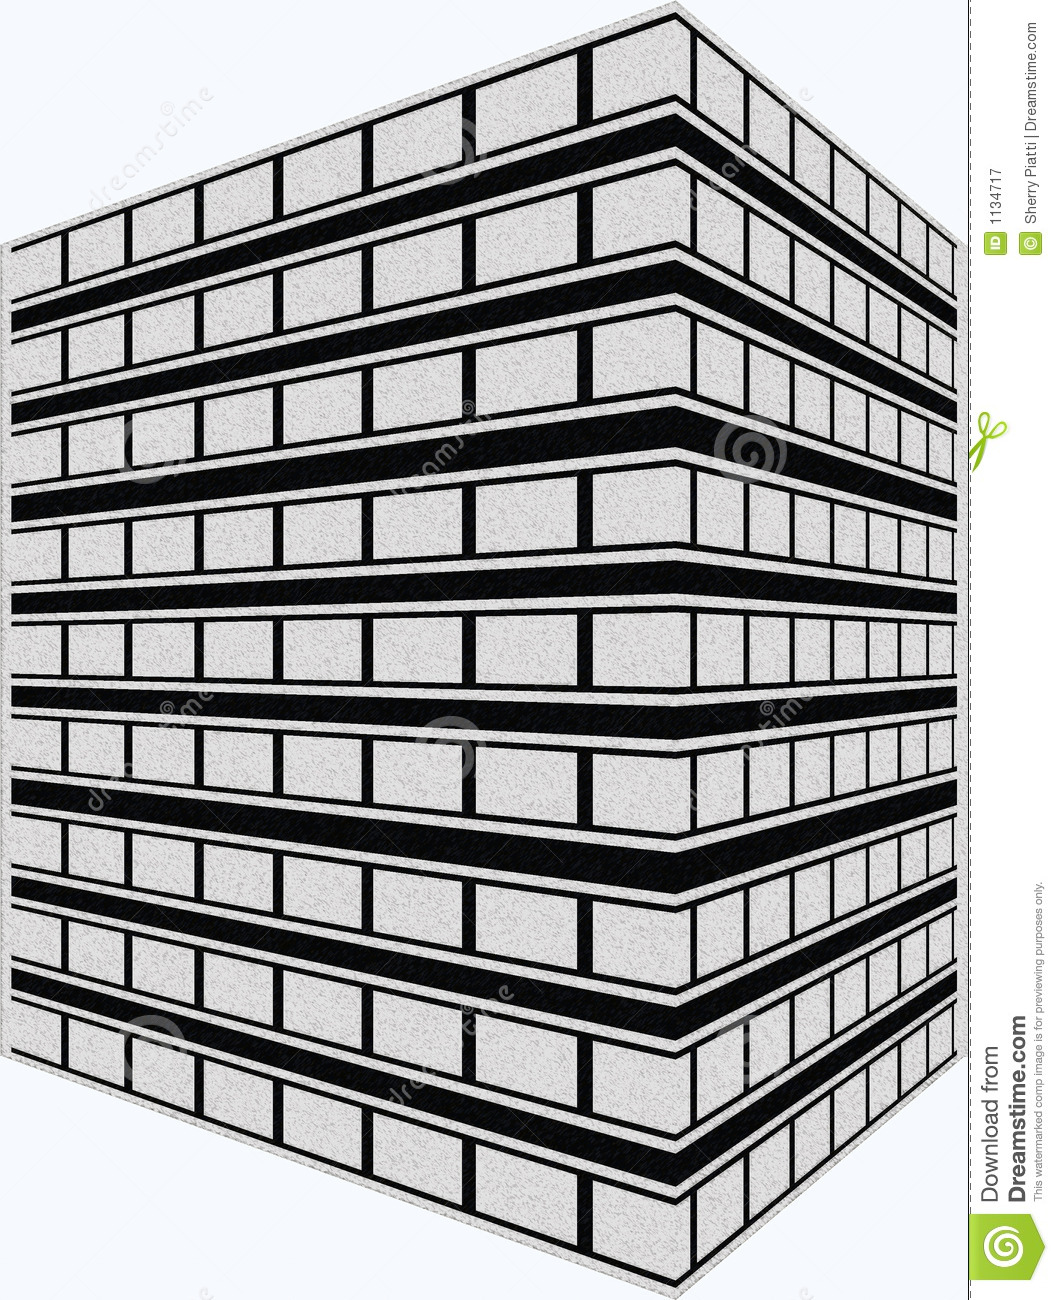 Office building clipart black and white png picture free stock Monochrome Clip Art Building – Clipart Free Download picture free stock